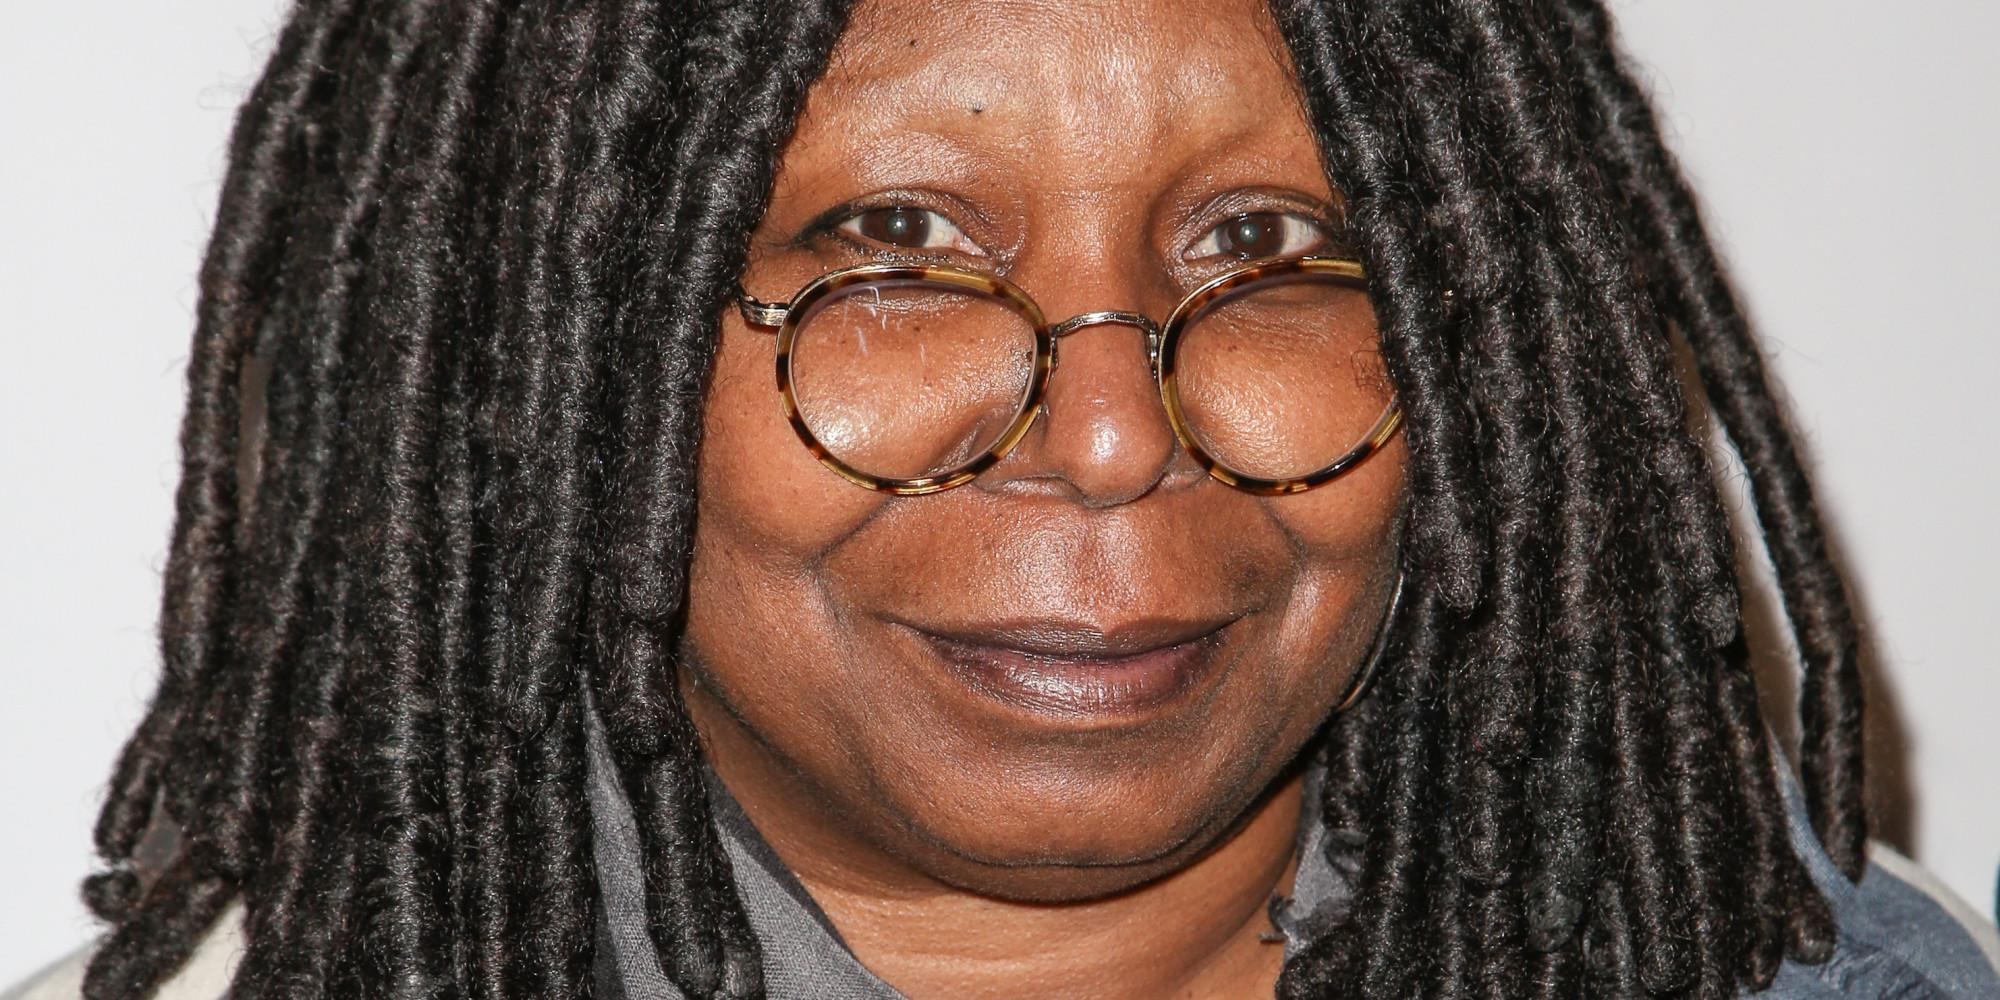 Whoopi Goldberg joins Delores & Jermaine | Moviehole